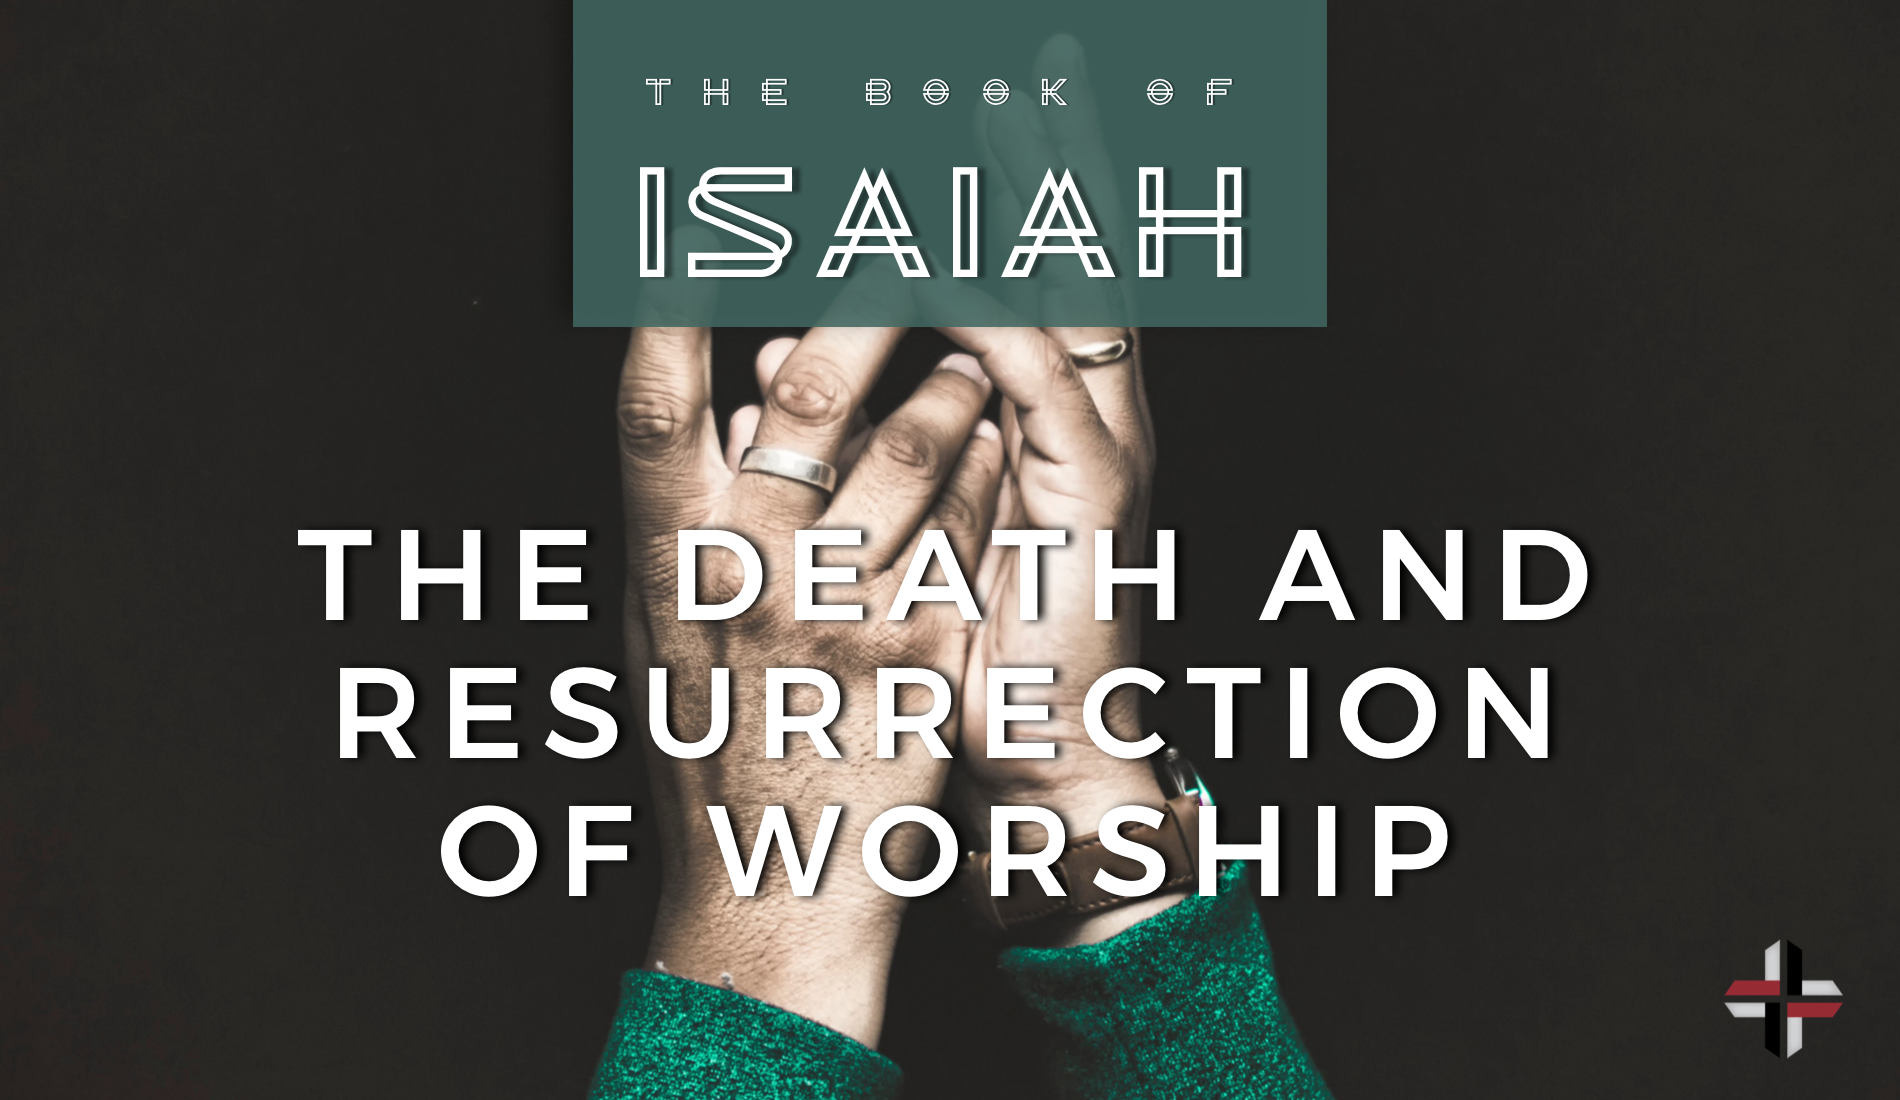 The Death and Resurrection of Worship